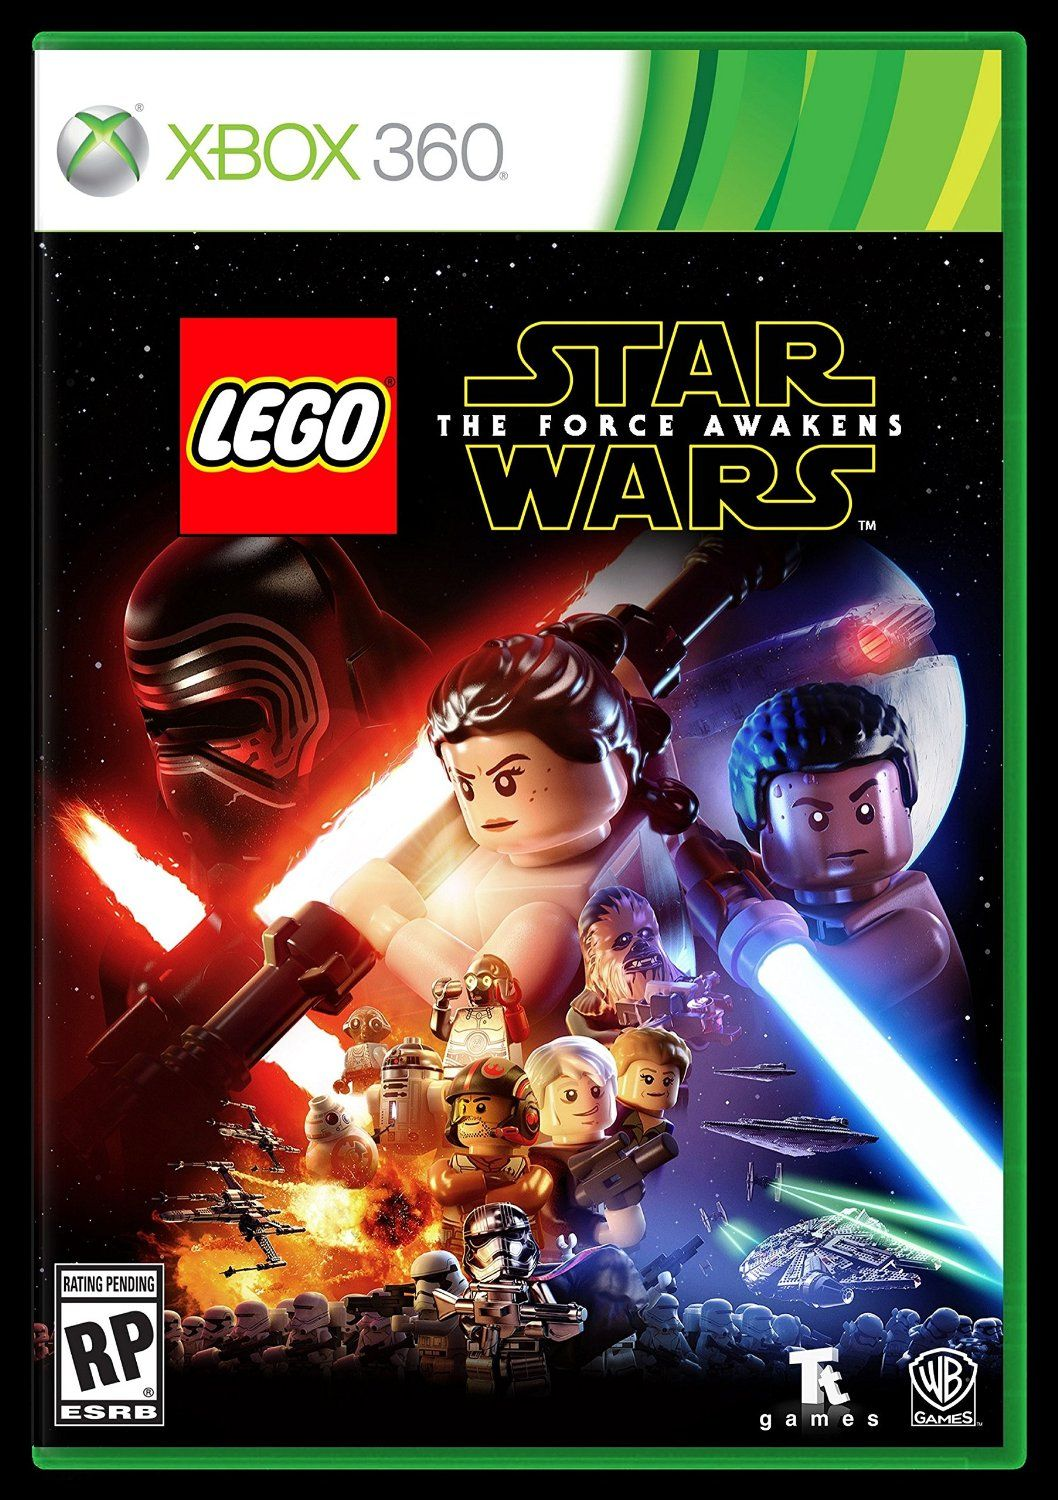 There's no shortage of Star Wars Xbox 360 Games. So I've